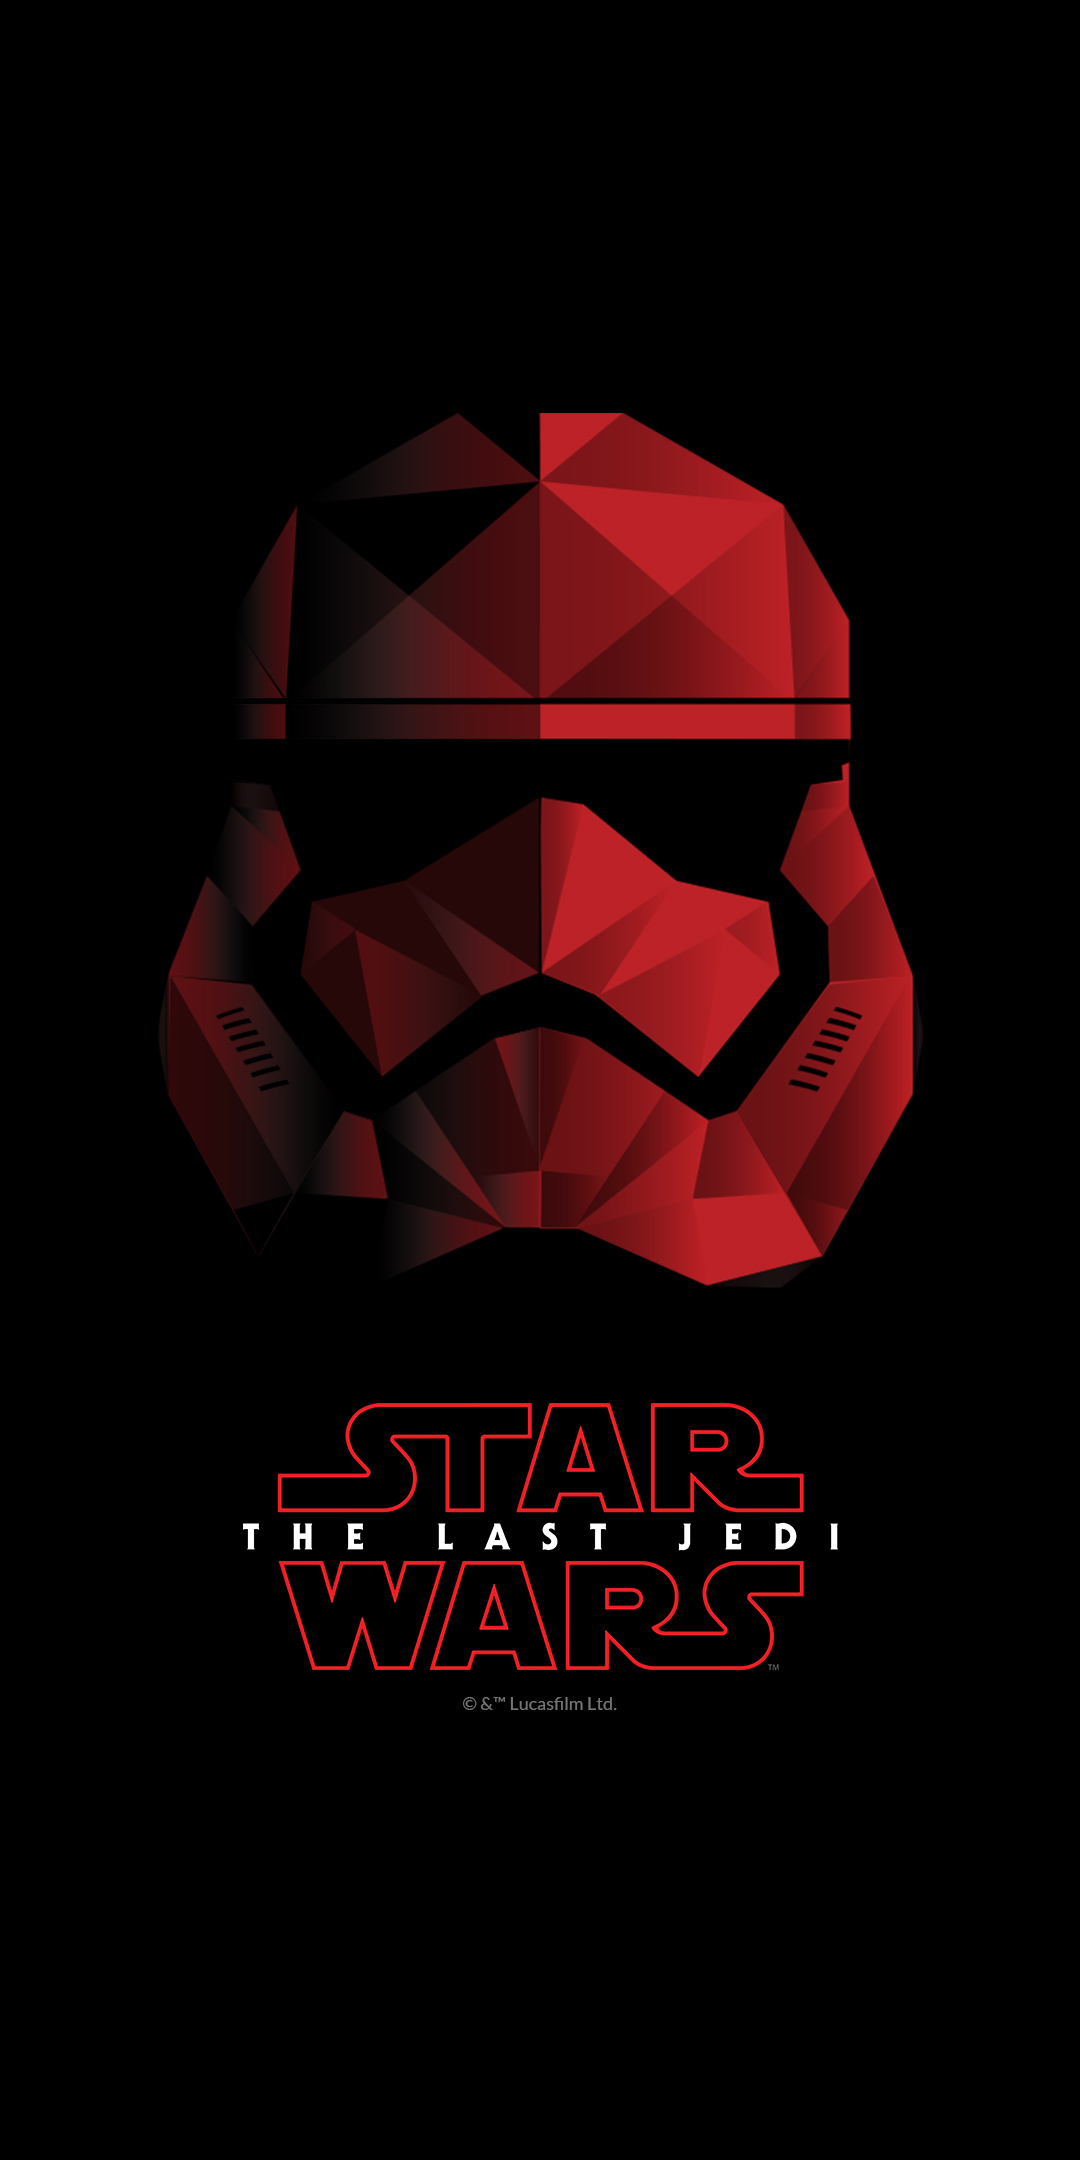 Get all the Star Wars The Last Jedi wallpapers from the